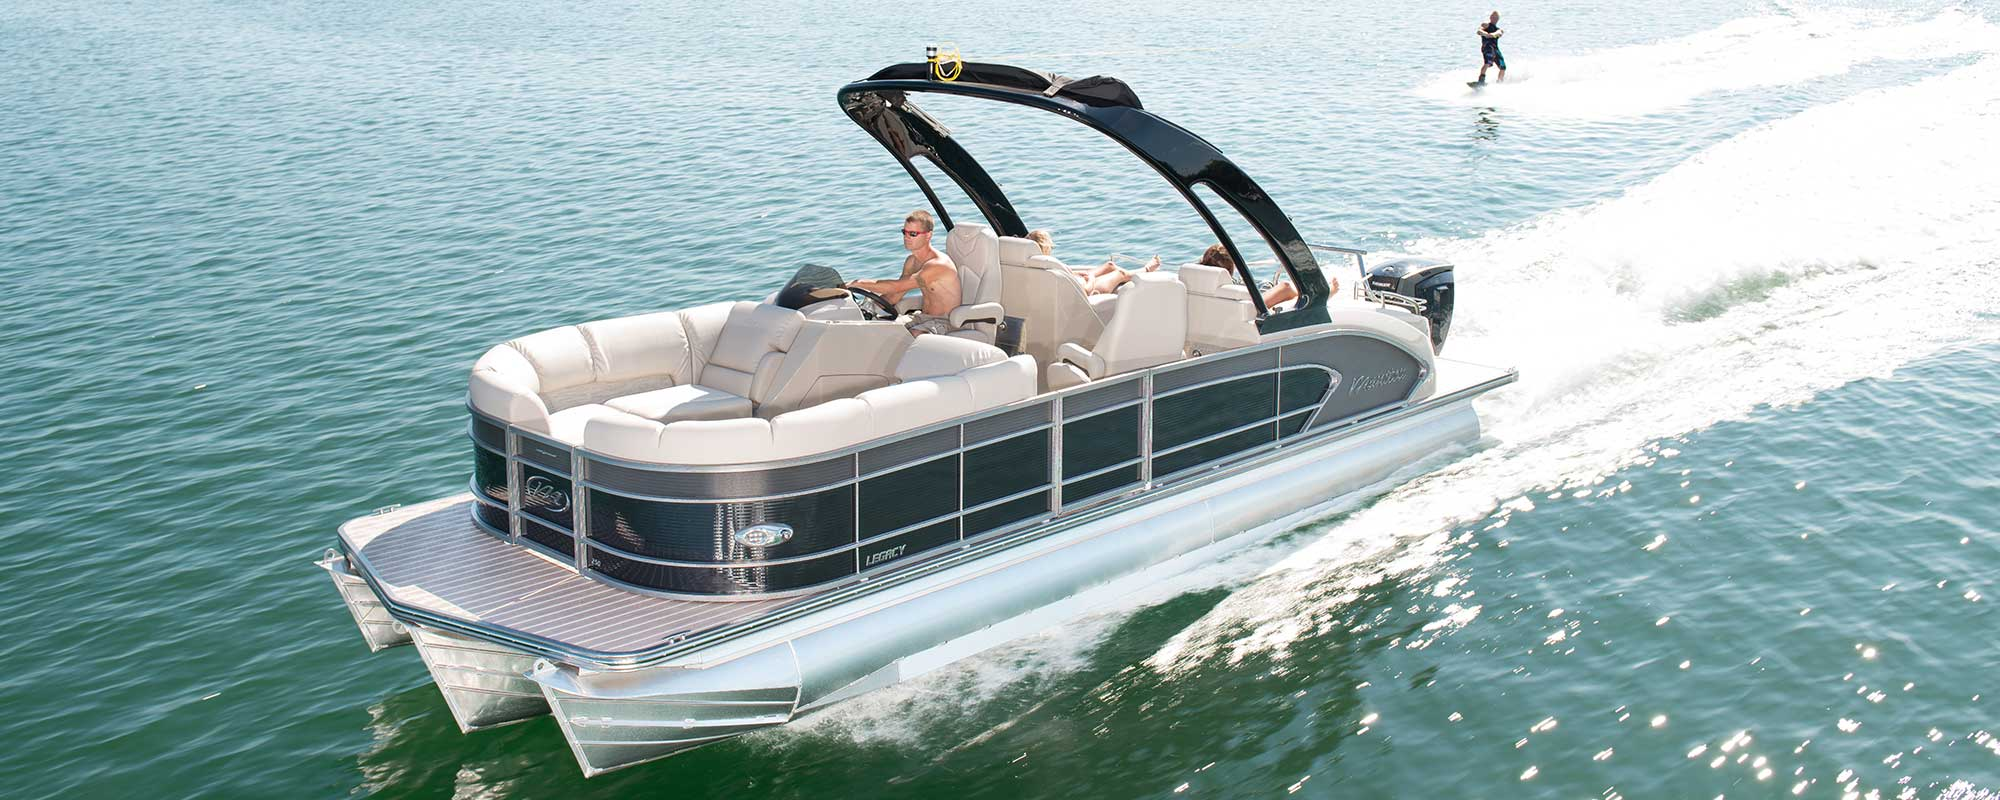 Ohio Dealer For Fun Fast And Luxurious Manitou Pontoon Boats